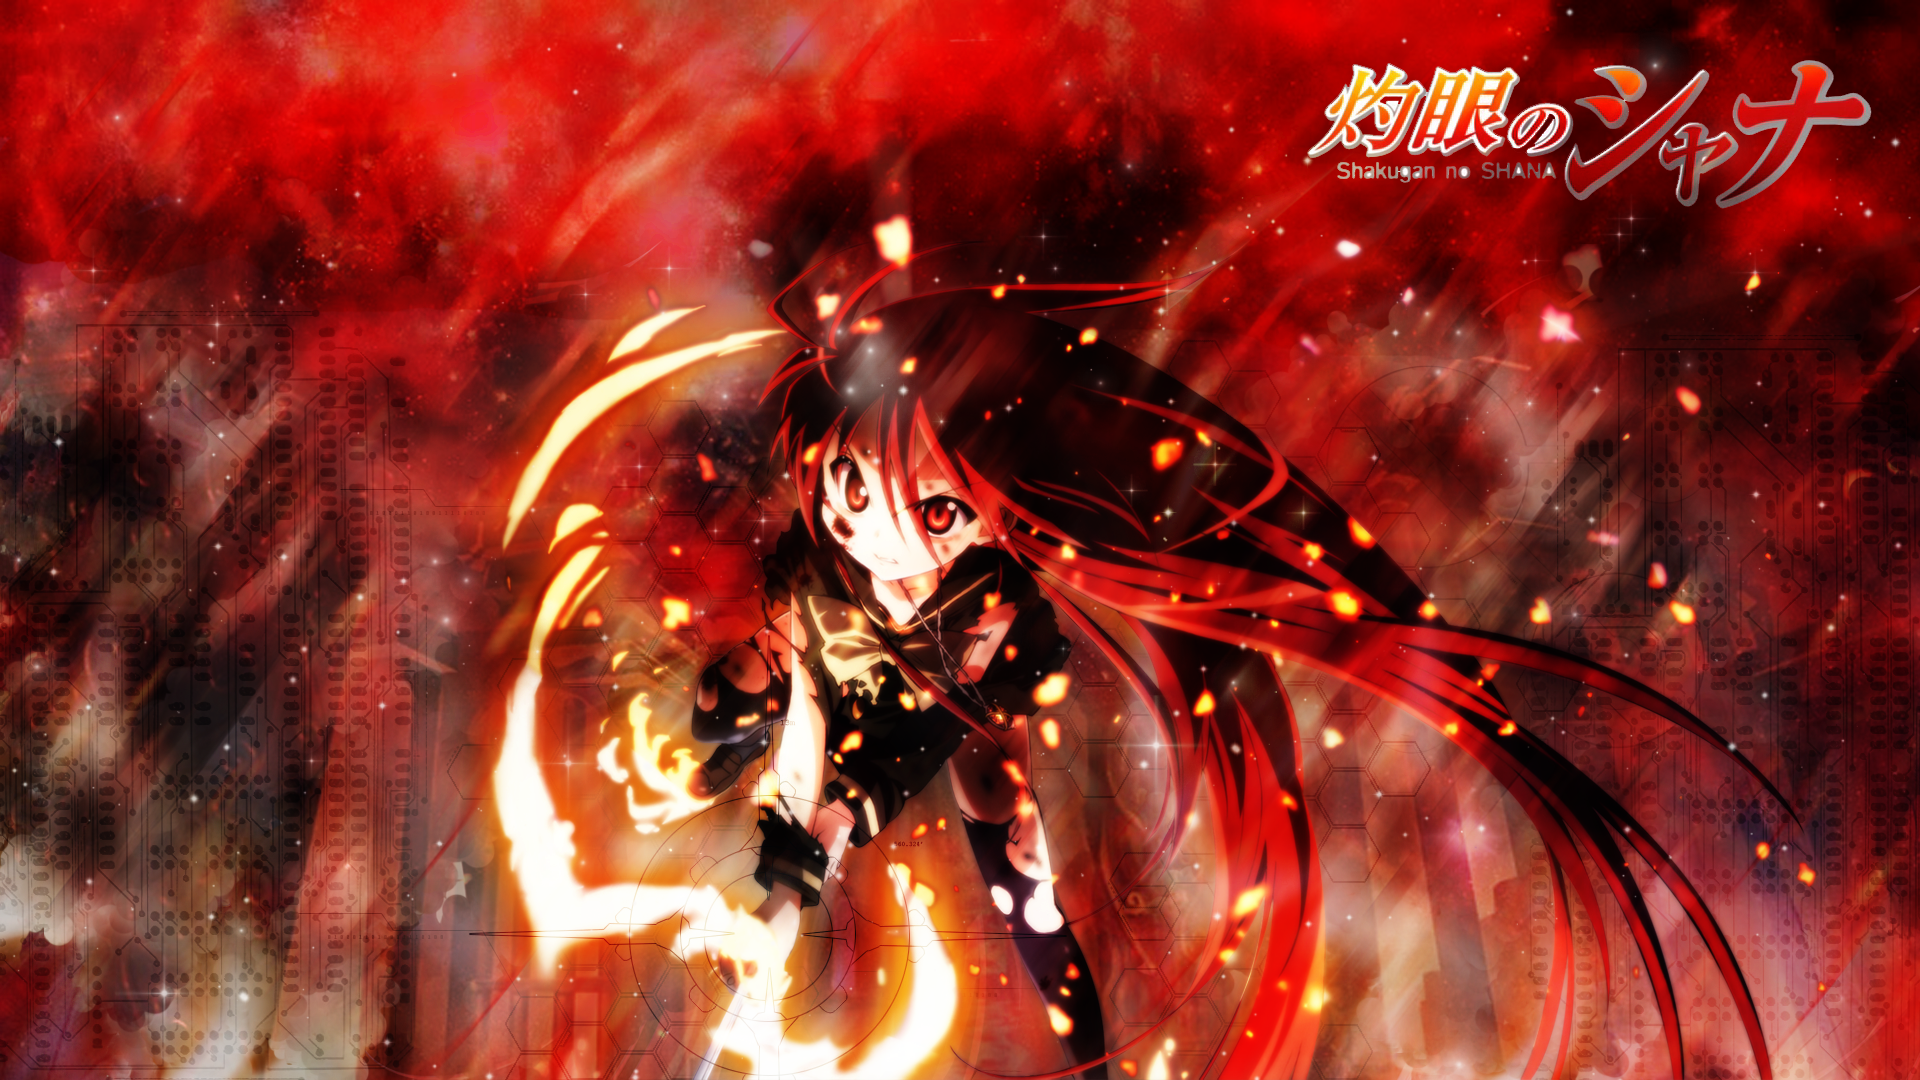 shakugan no shana wallpaper hd